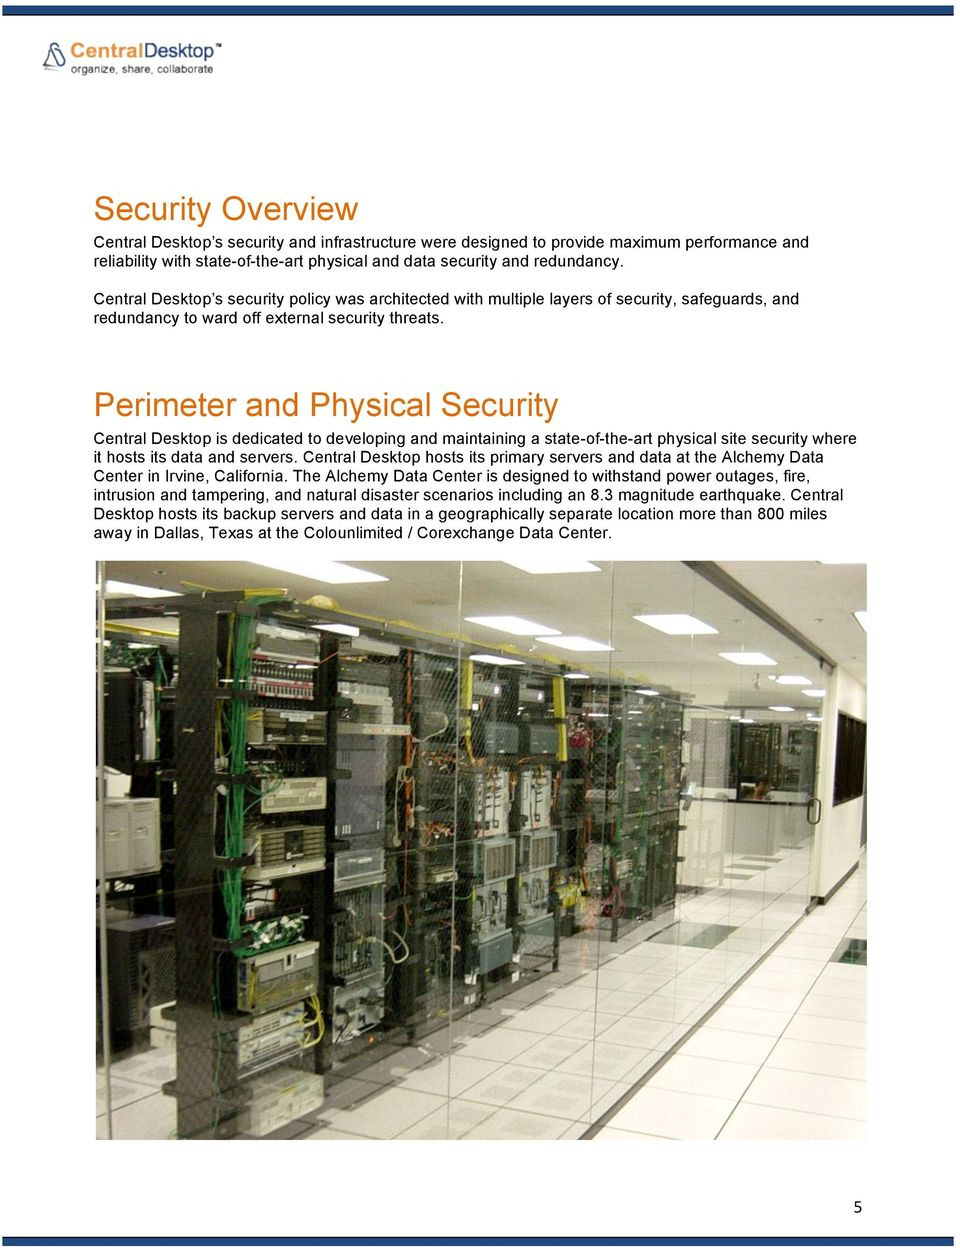 Perimeter and Physical Security Central Desktop is dedicated to developing and maintaining a state-of-the-art physical site security where it hosts its data and servers.